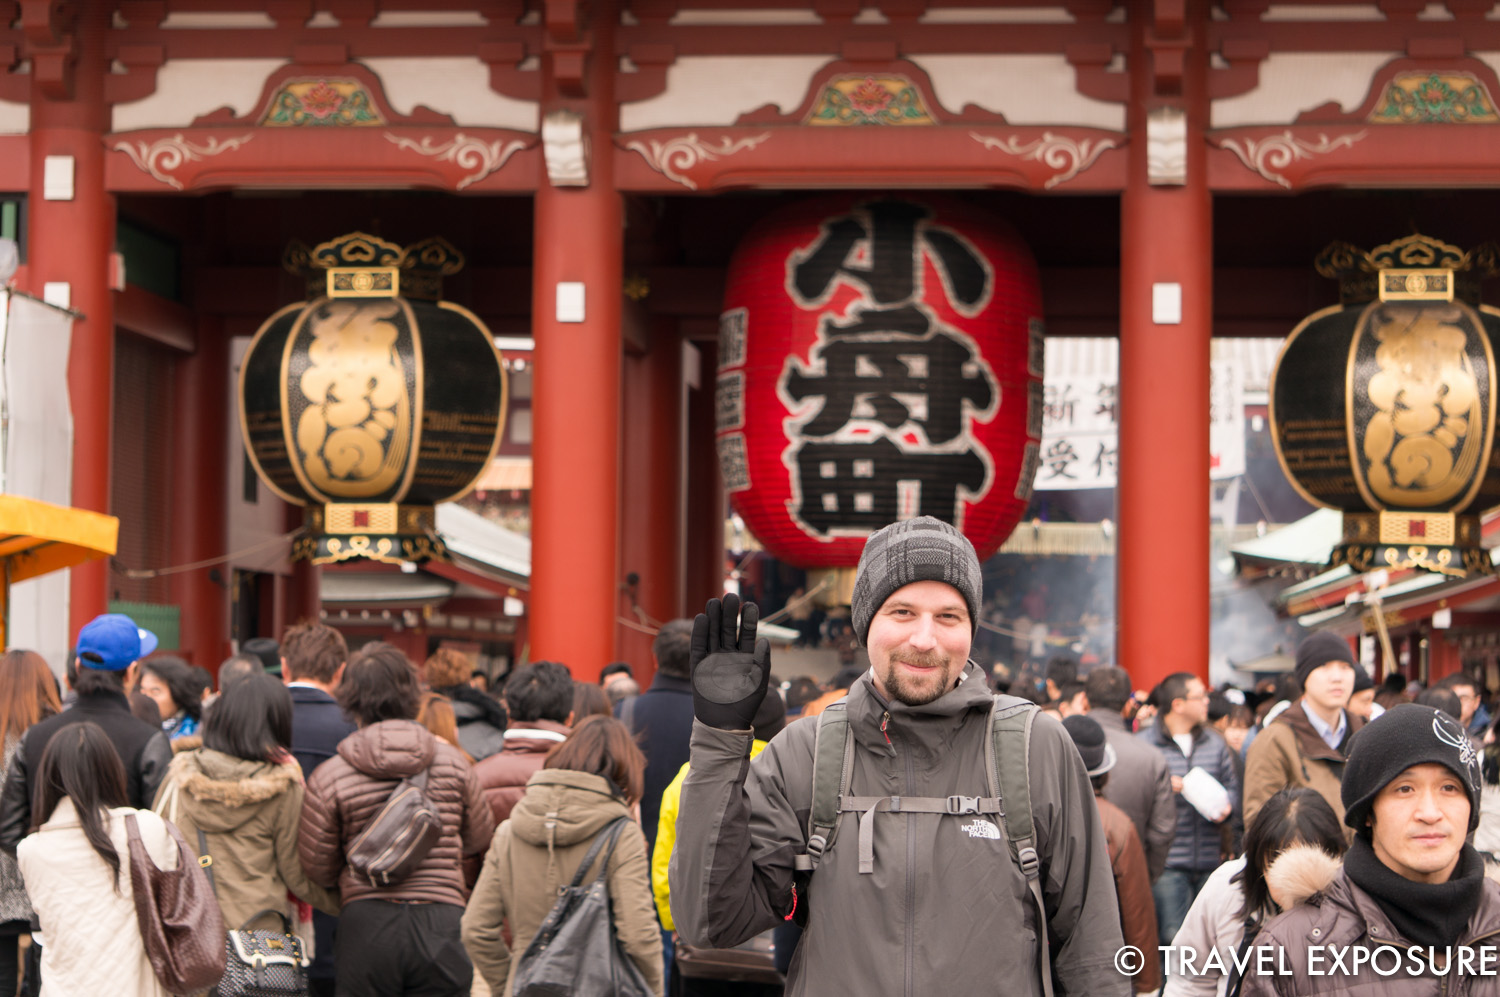 Root stands a head above the crowd as we approach the Hozomon Gate, featuring three large lanterns.